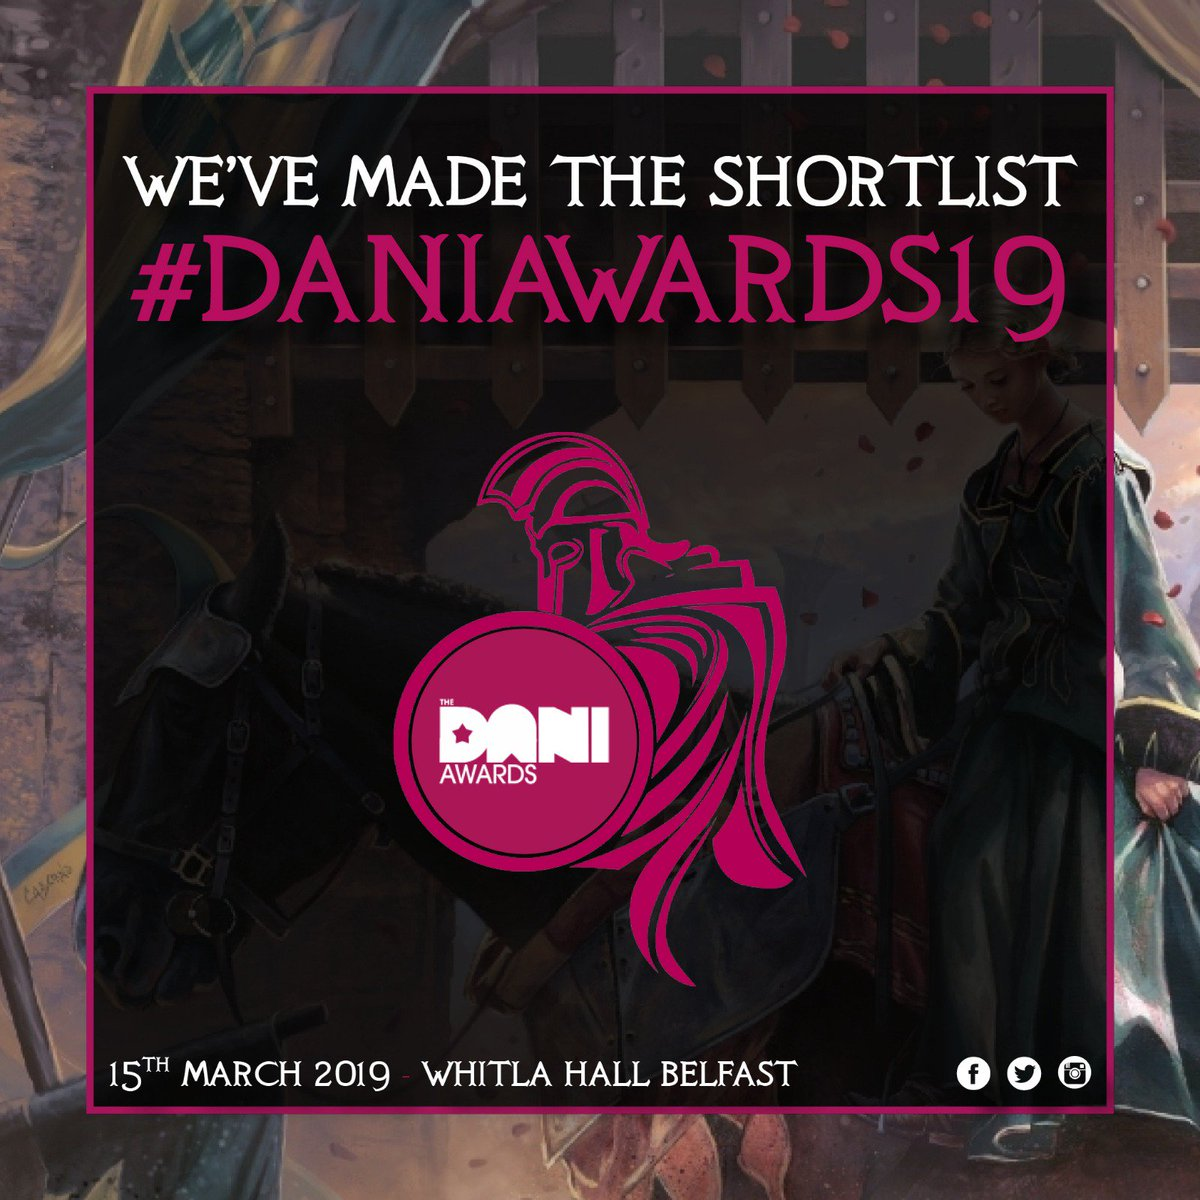 """.@ArcDox have made the Shortlist for the Award Category """"Best Use of Digital / Innovation in Construction, Engineering &amp; Manufacturing"""" @DANIAwards #DANIAwards19  https:// thedaniawards.com / &nbsp;  <br>http://pic.twitter.com/WjkpTwr3jE"""